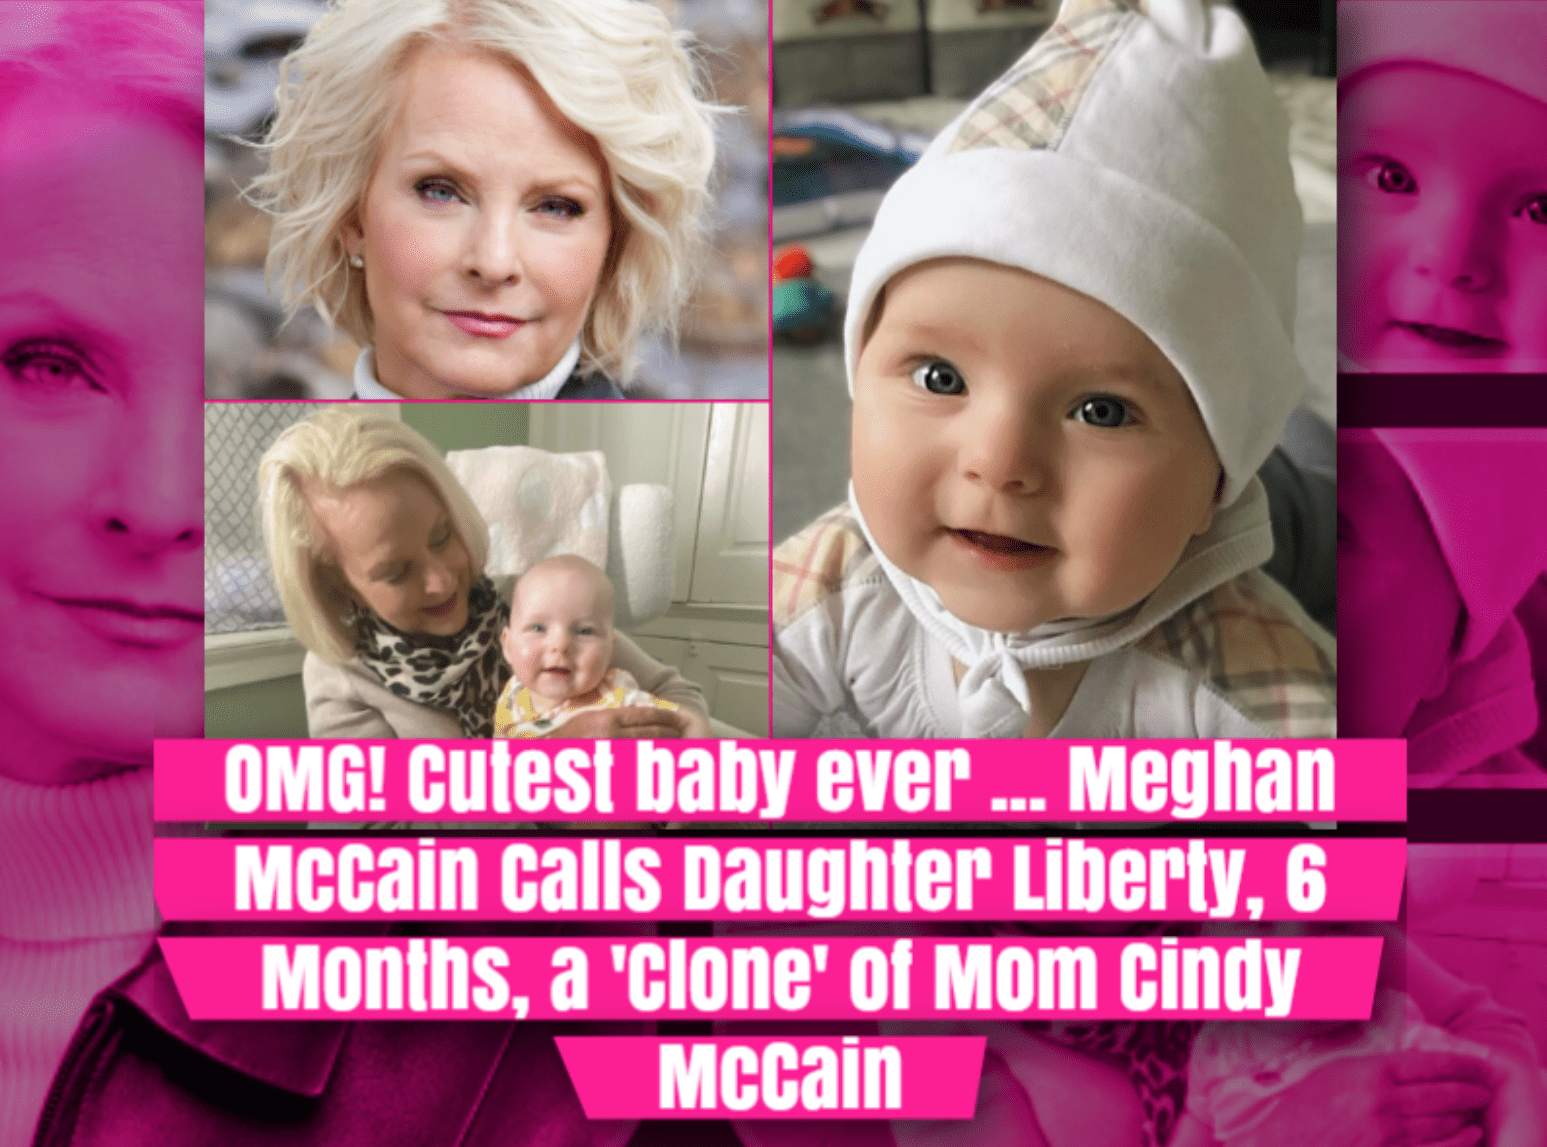 OMG Cutest baby ever! Meghan McCain Calls Daughter Liberty, 6 Months, a 'Clone' of Mom Cindy McCain